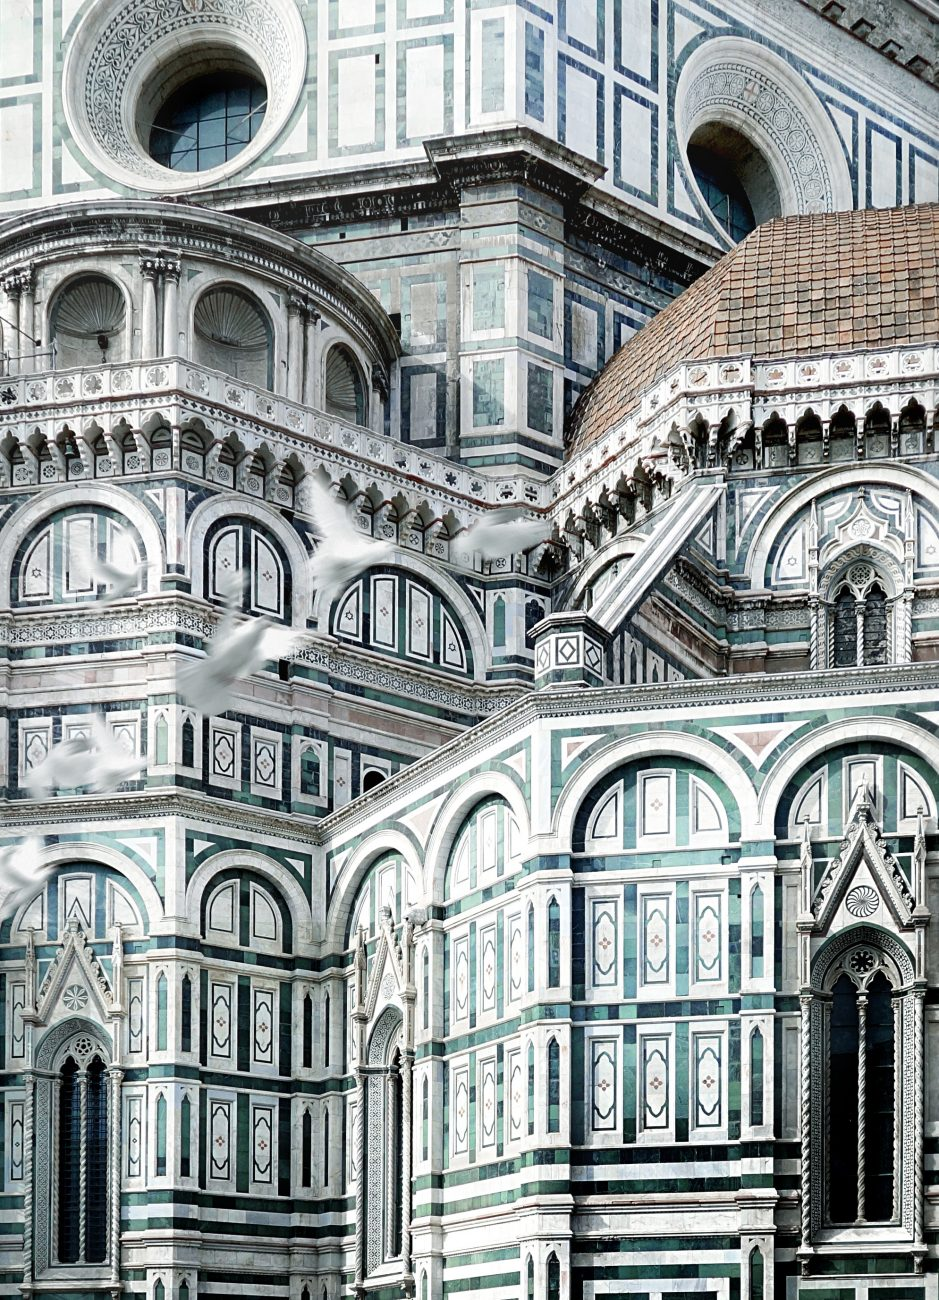 Architecture in Florence